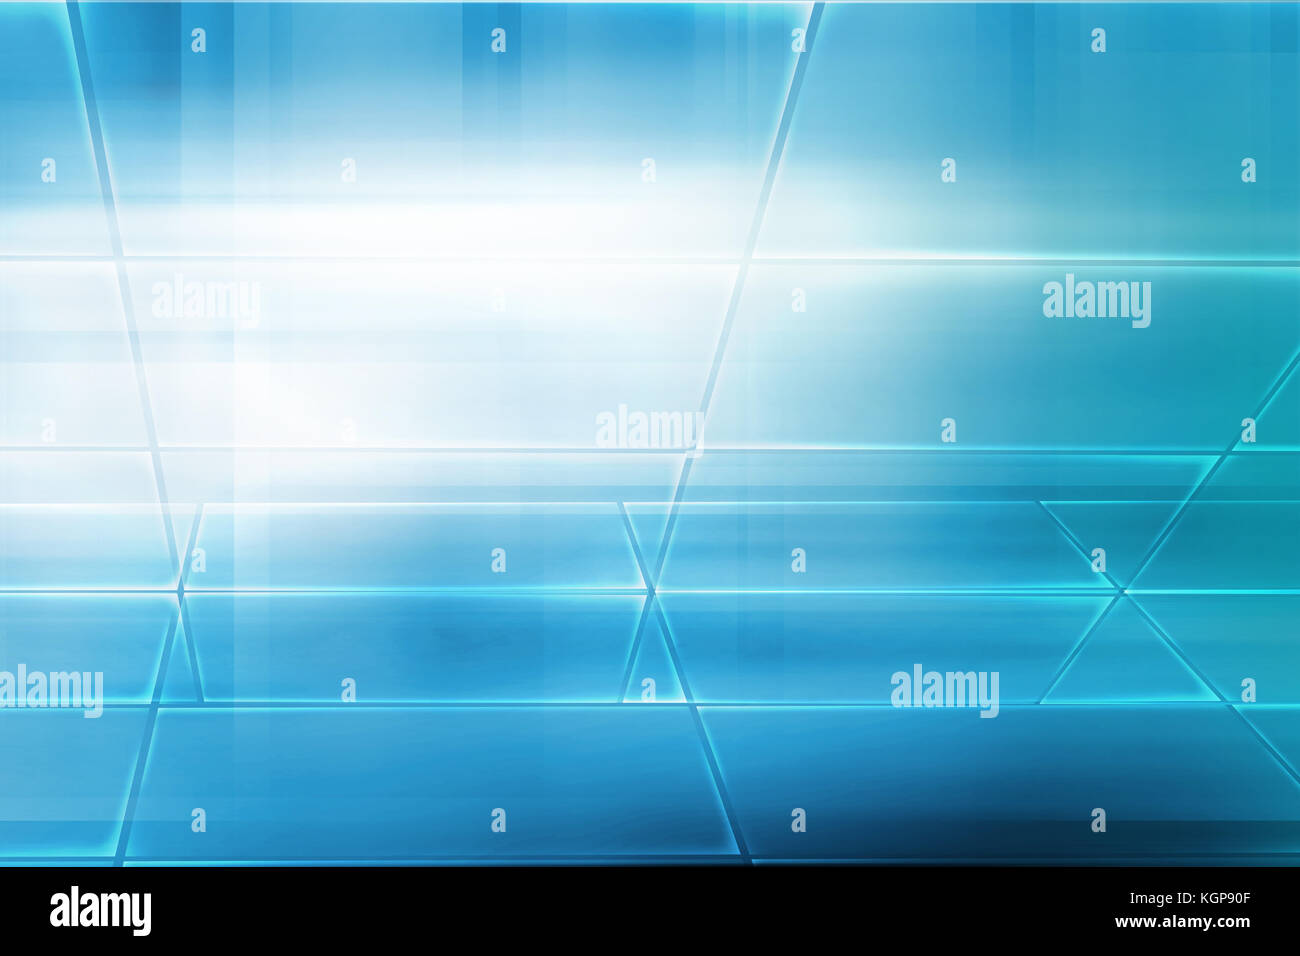 Graphical Abstract Technology Background High Tech Blue Theme Stock Photo Alamy